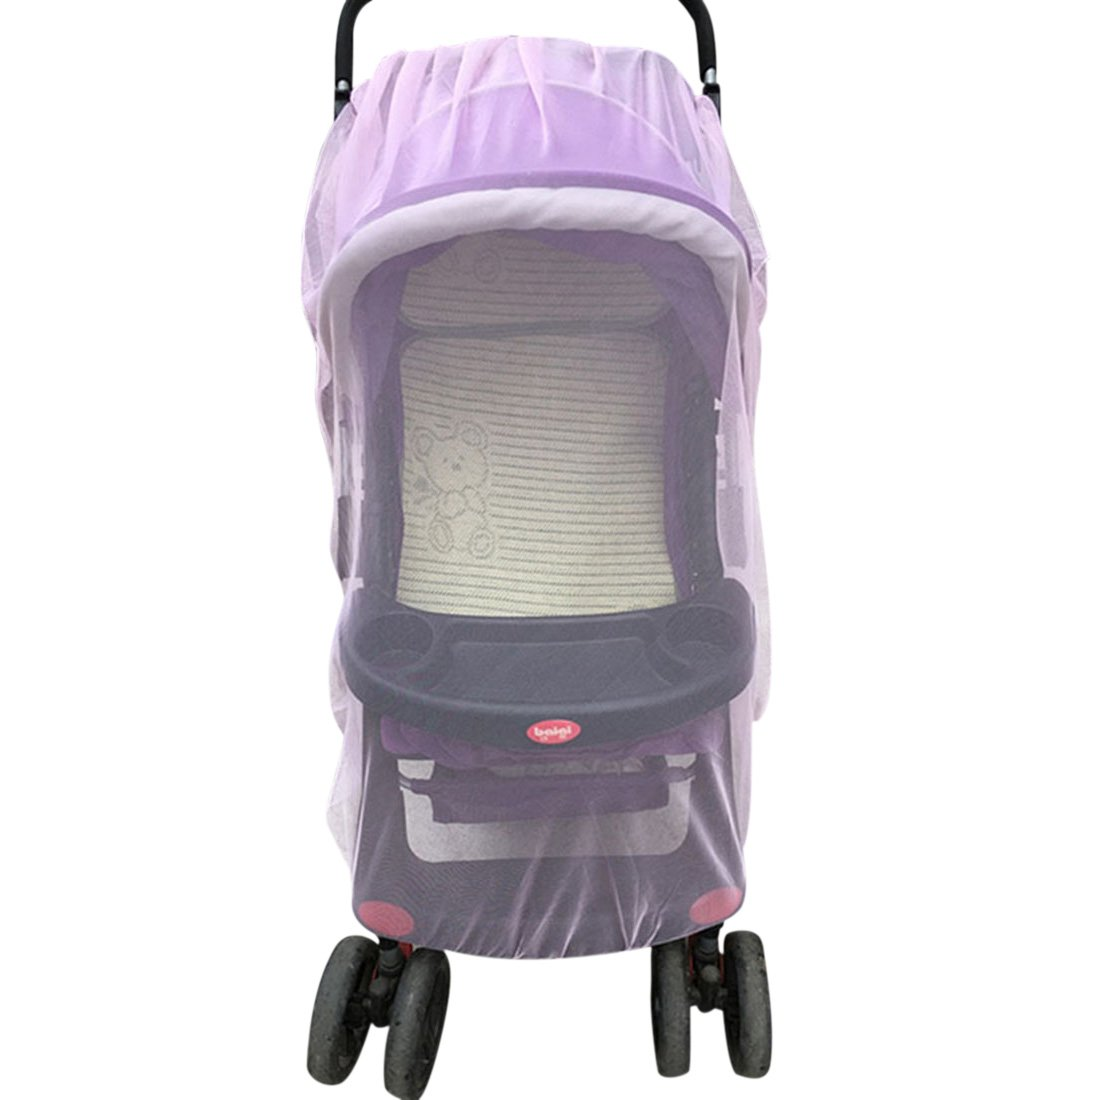 Freahap Baby Stroller Mosquito Net Pushchair Infants Safe Anti Insect Mesh Cover Pink Beautylife88